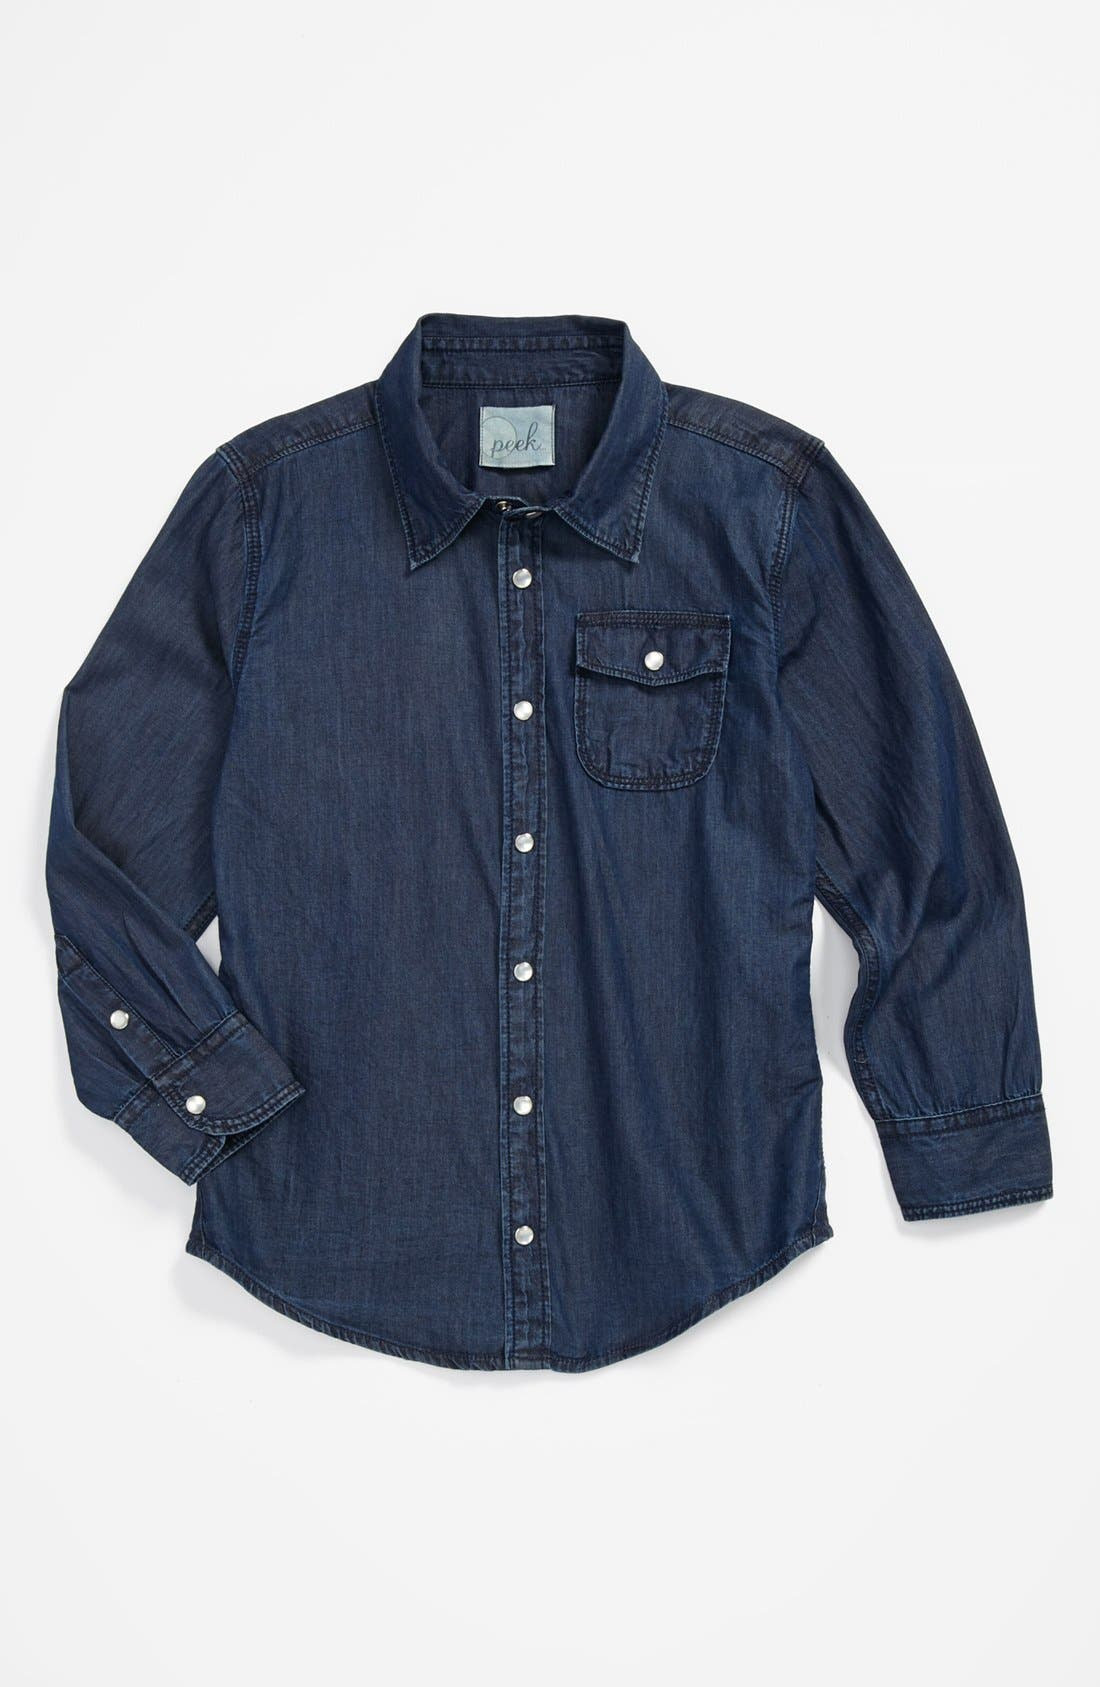 Main Image - Peek 'Logan' Chambray Shirt (Big Boys)